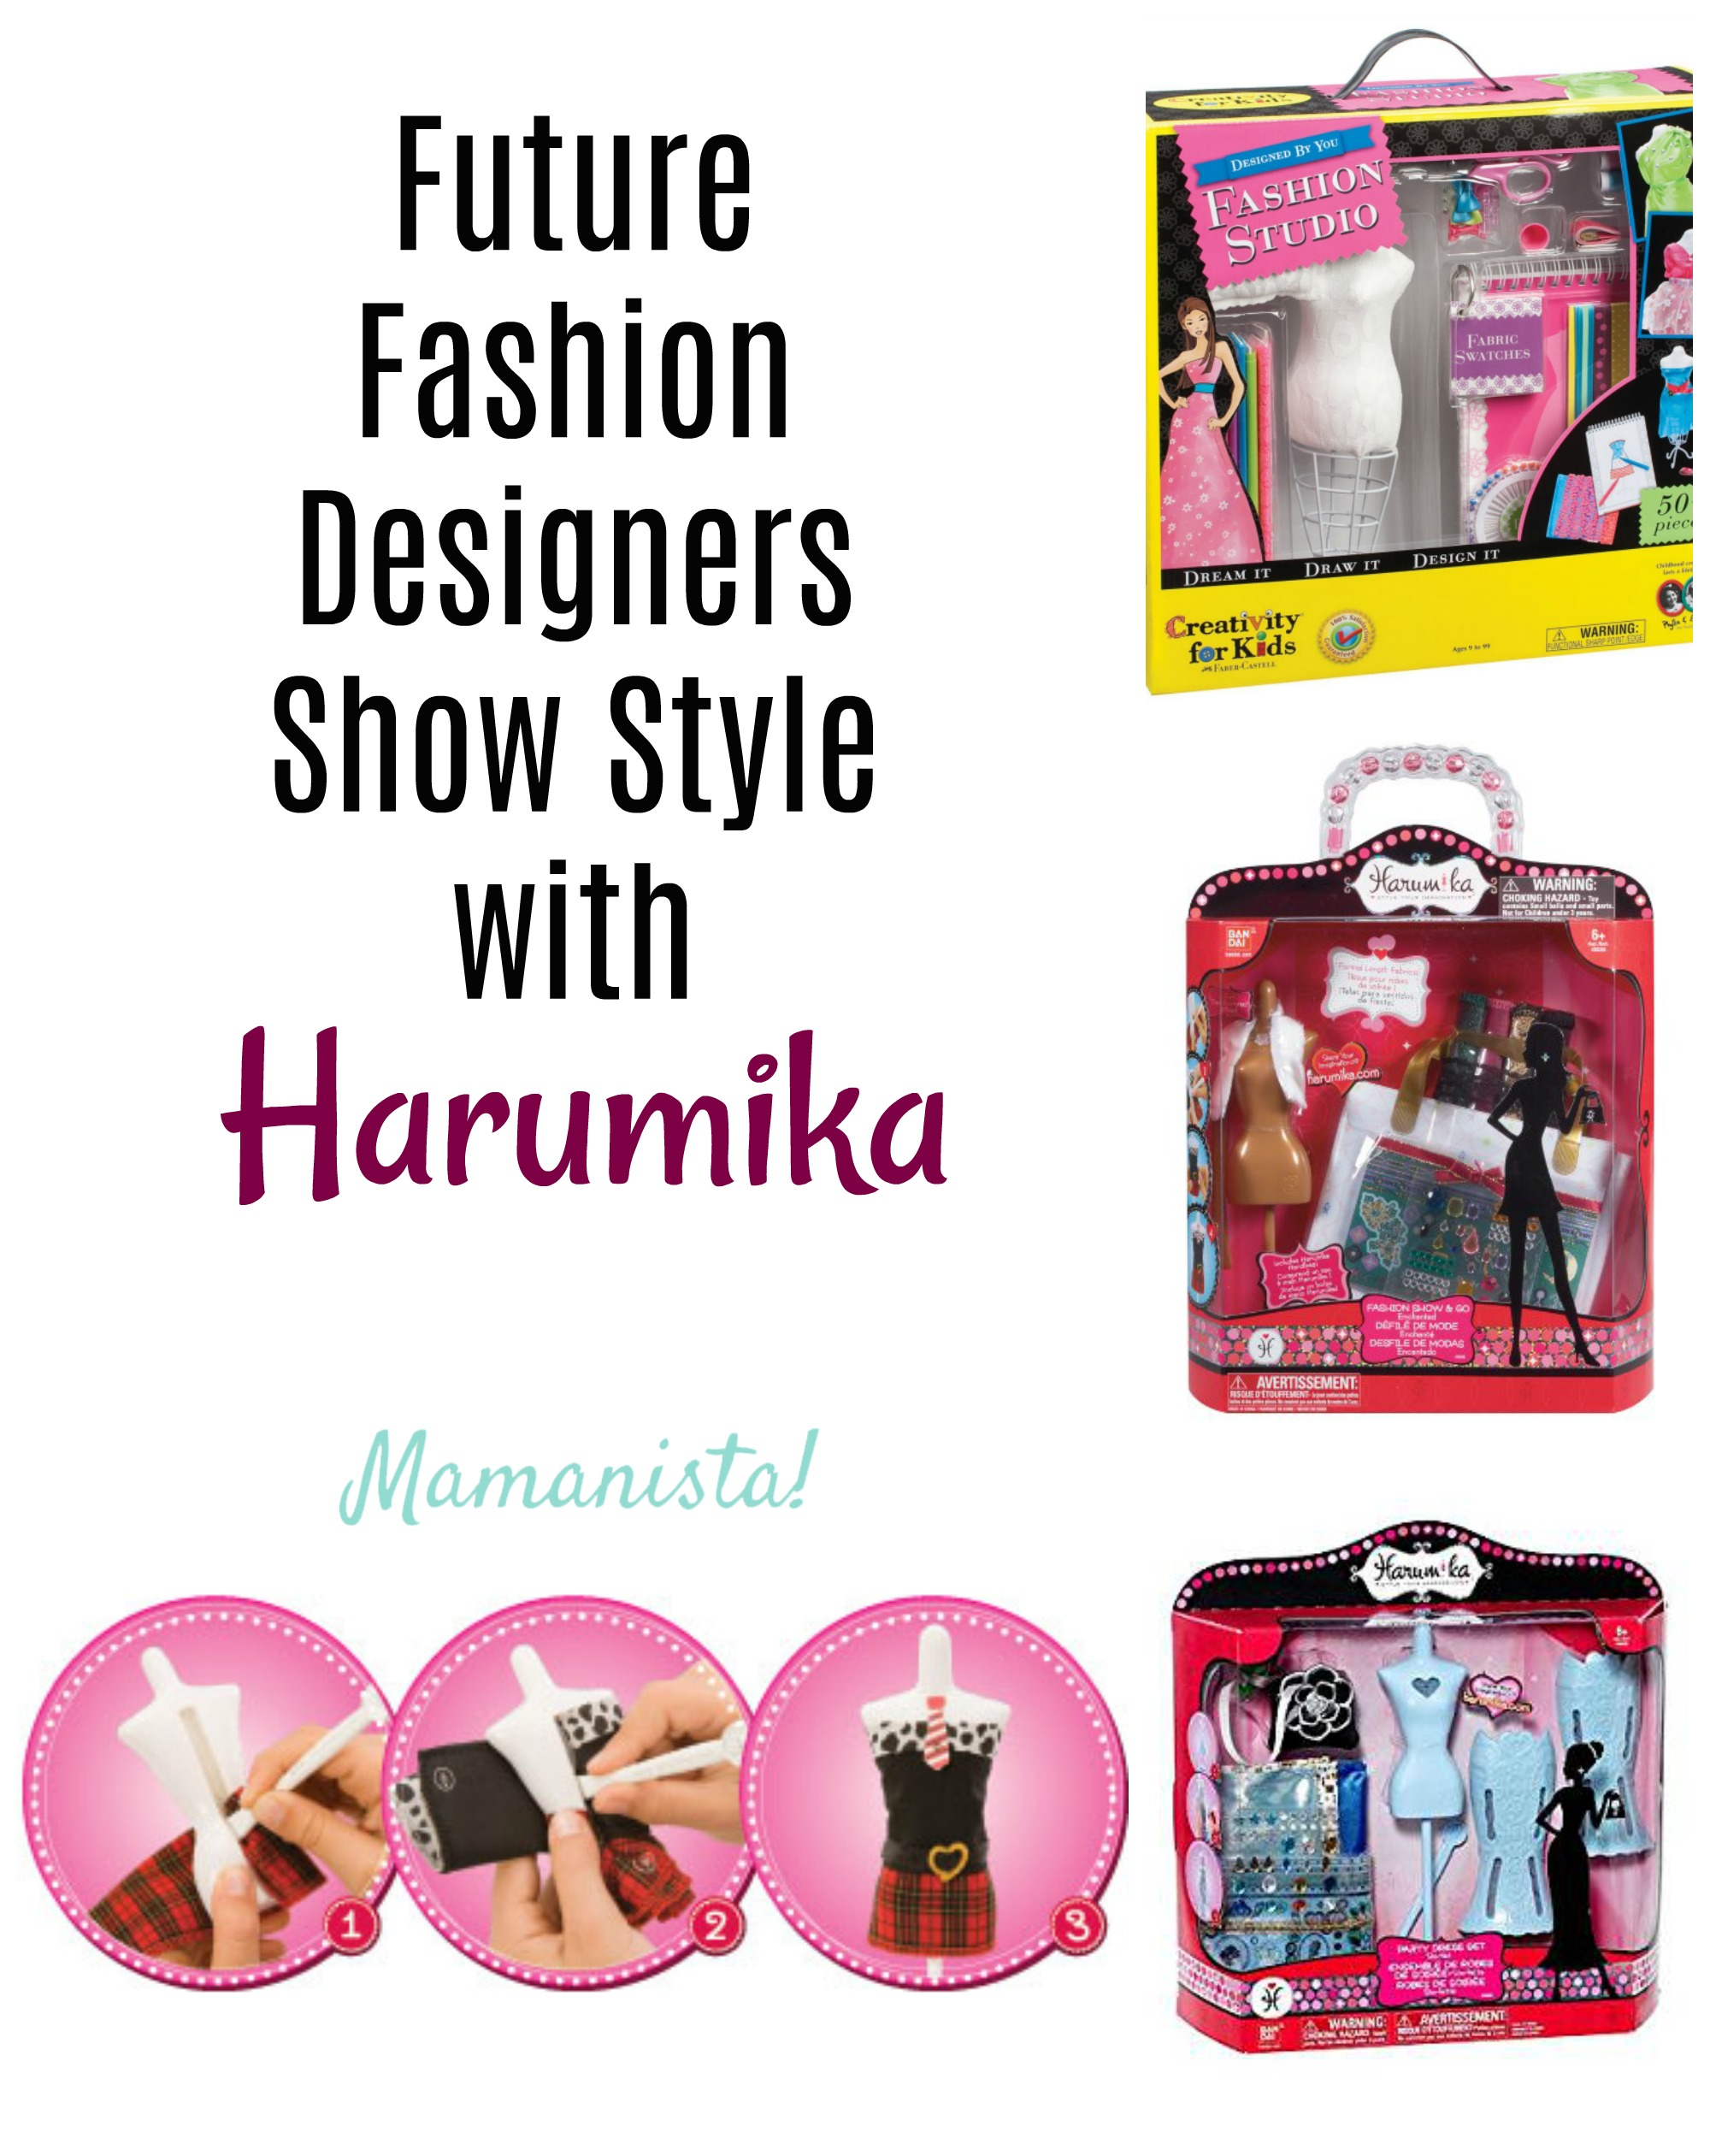 Future Fashion Designers Show Style with Harumika